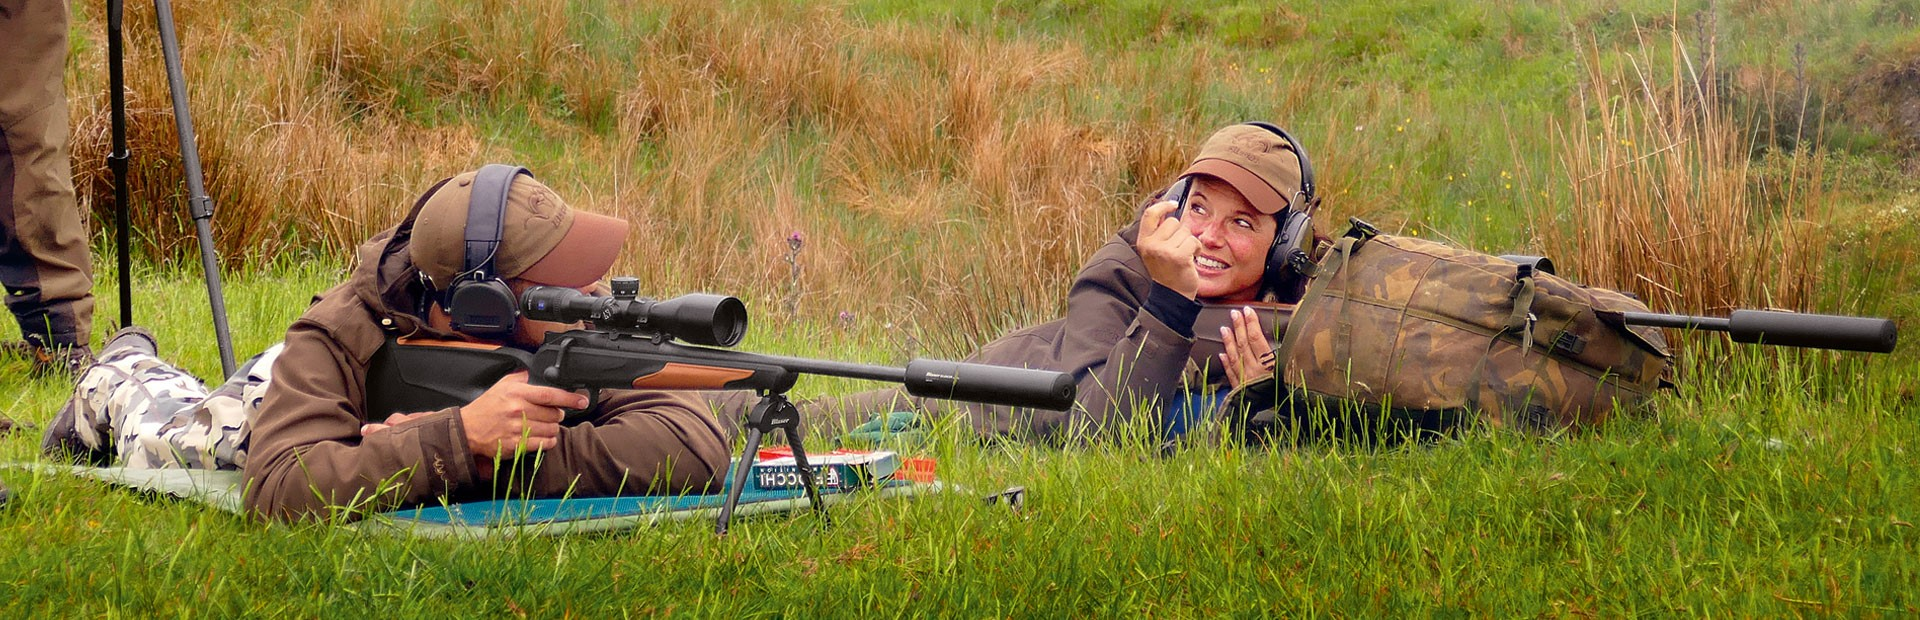 Blaser – Blog – The main reasons for missing your target - Part 2